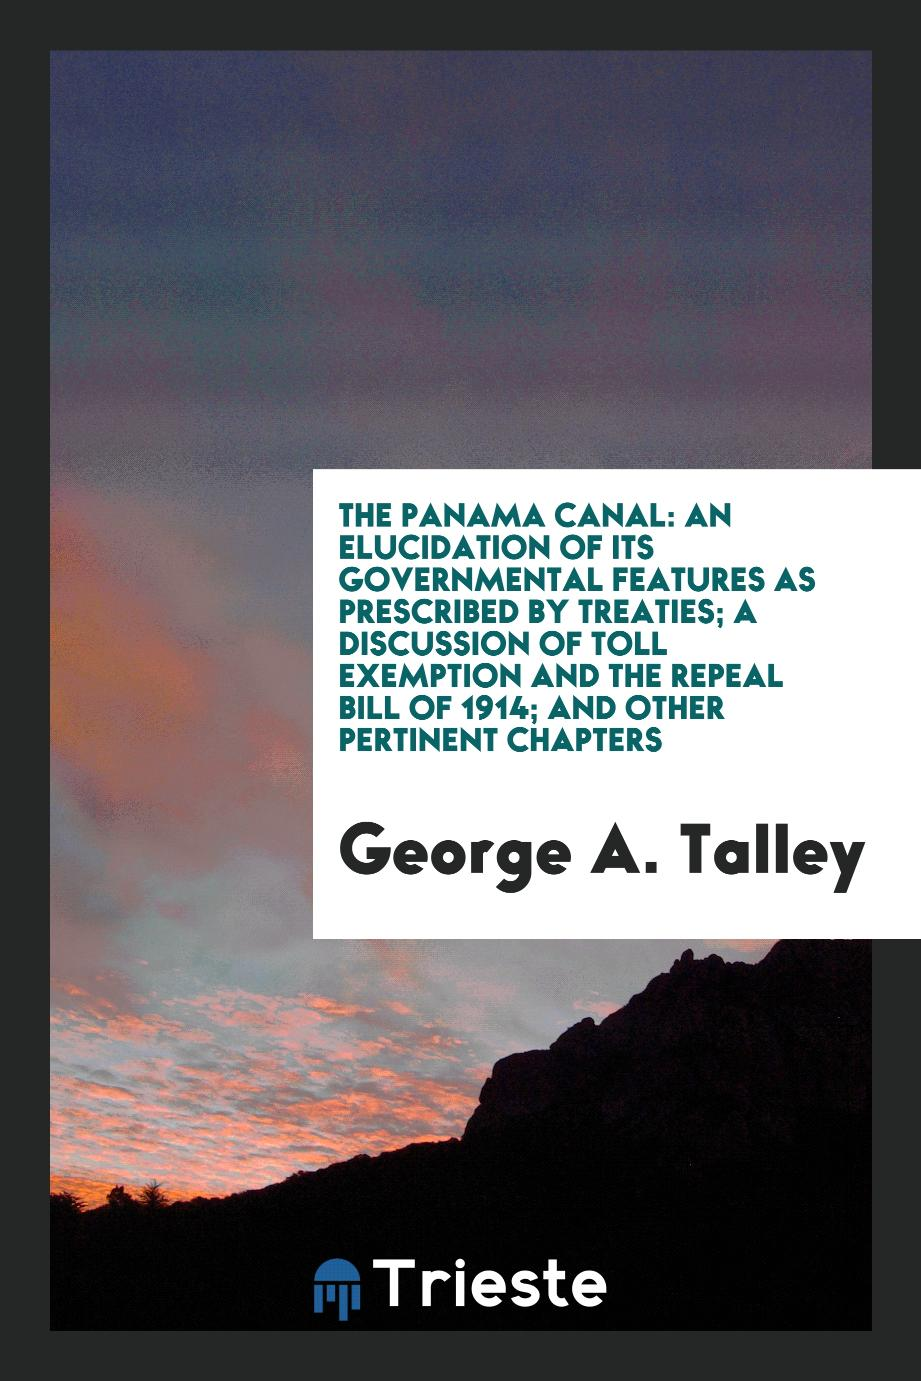 The Panama Canal: An Elucidation of Its Governmental Features as Prescribed by Treaties; A Discussion of Toll Exemption and the Repeal Bill of 1914; And Other Pertinent Chapters